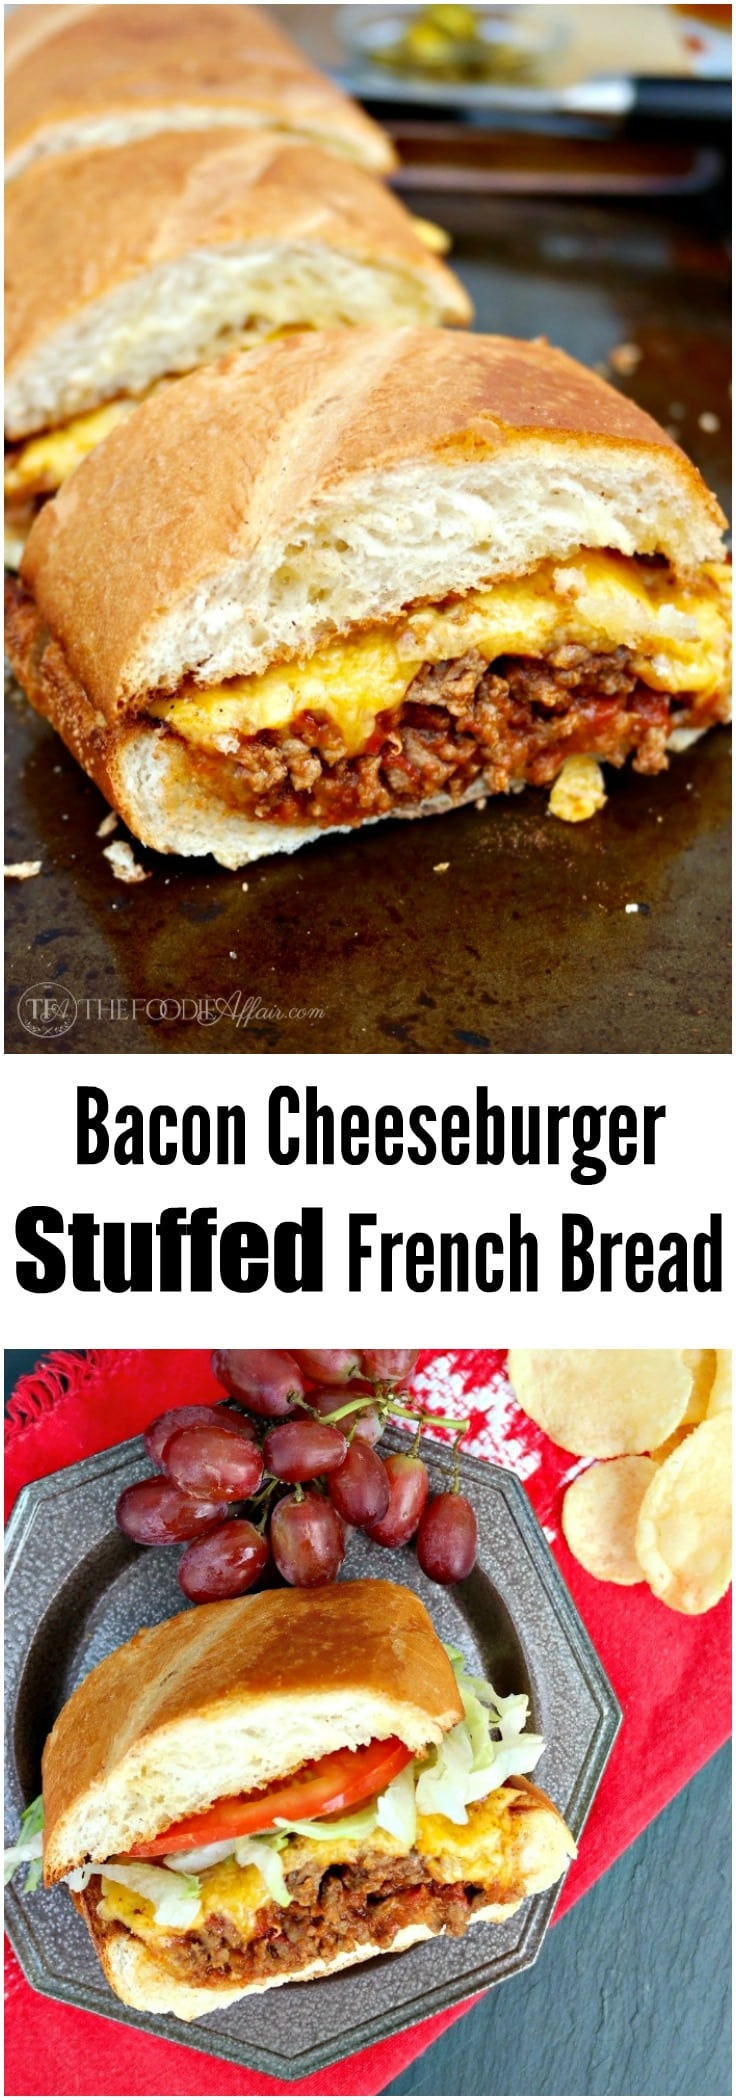 Beef stuffed french bread recipes